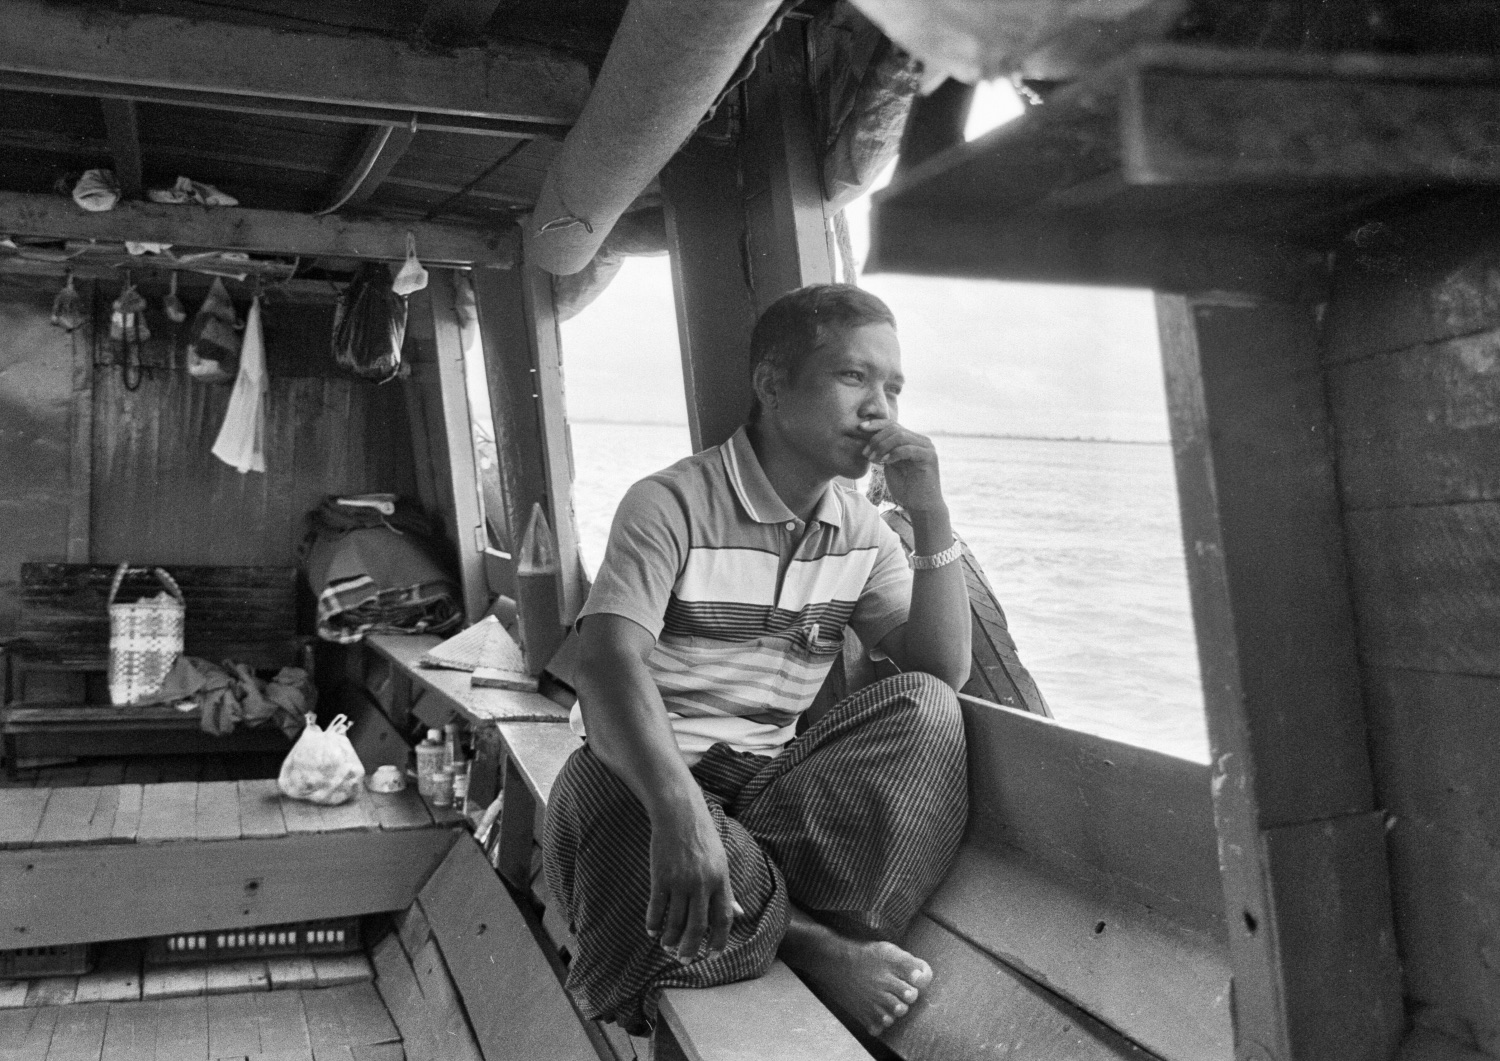 Man looking out of boat (Pic: Lester Ledesma)